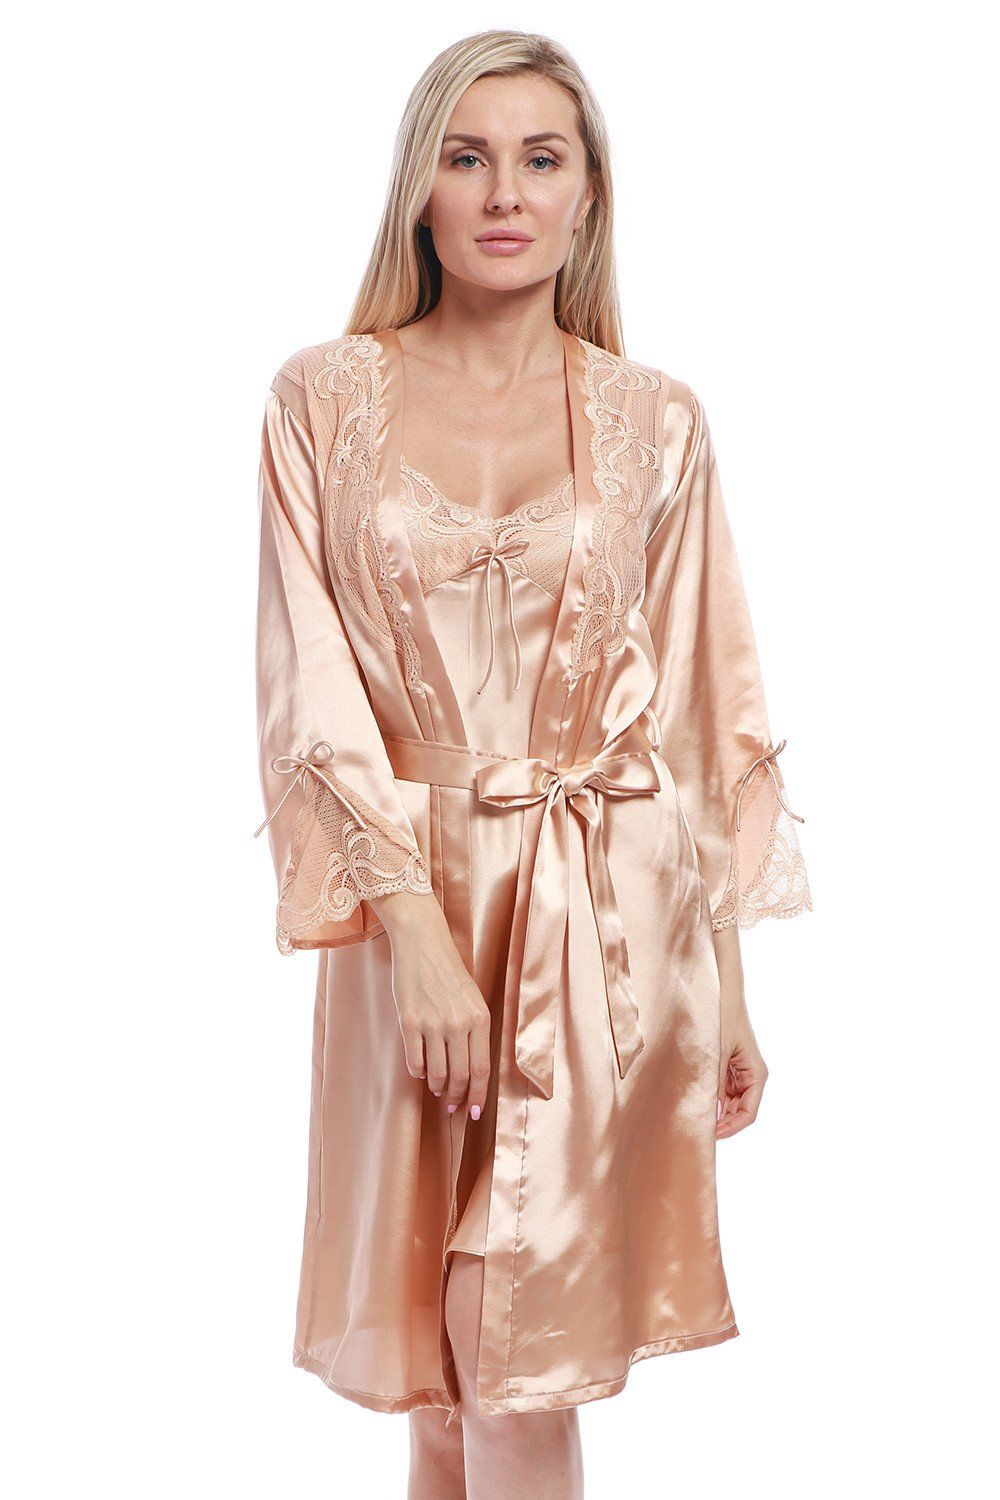 BellisMira Women\'s Long Satin Robe Bridal Kimono Lace Trim Nightgown ...